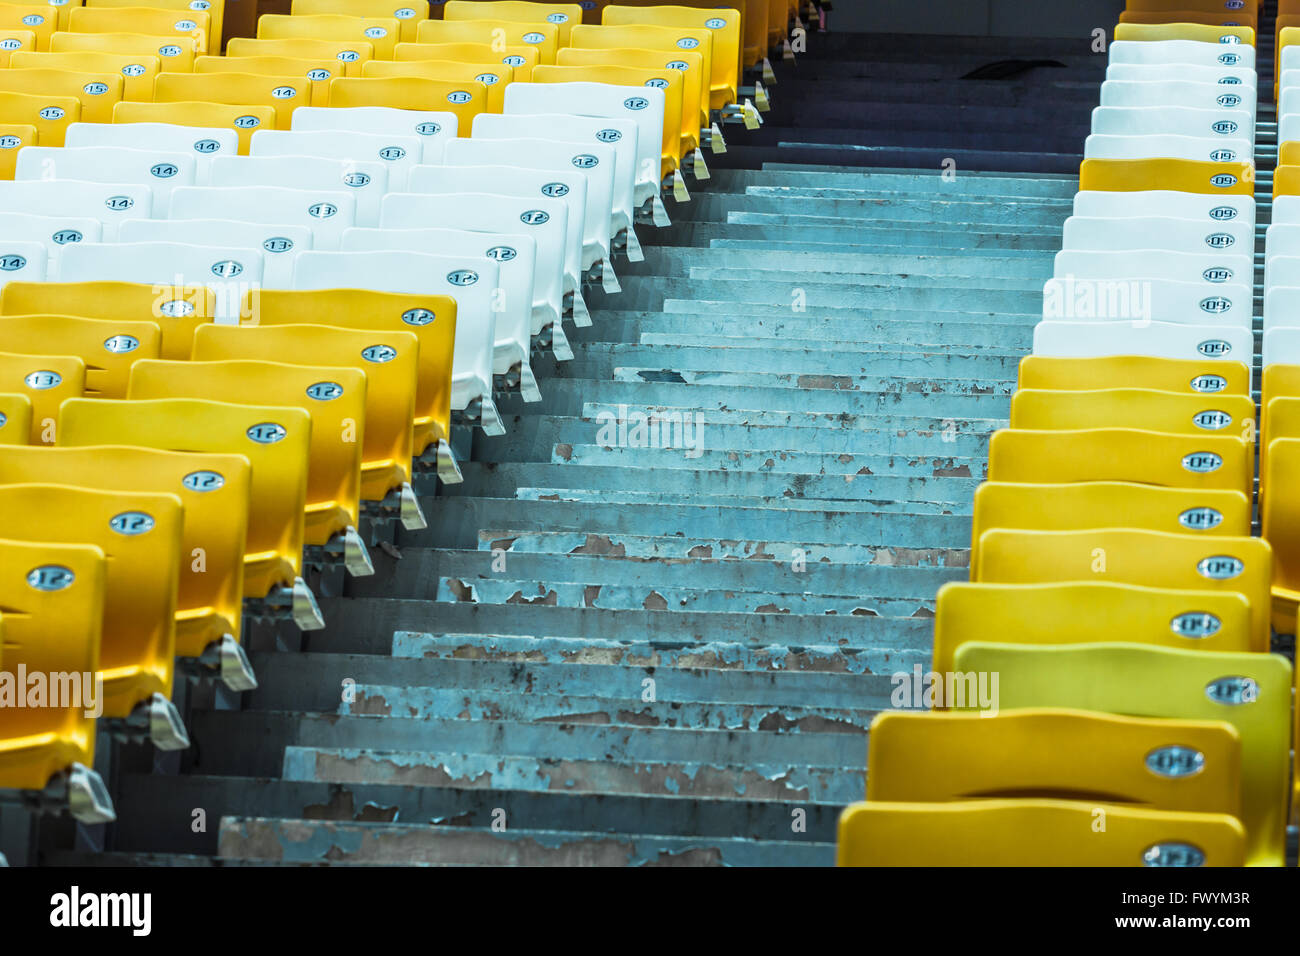 Haixinsha Guangzhou Asian Games venues auditorium - Stock Image